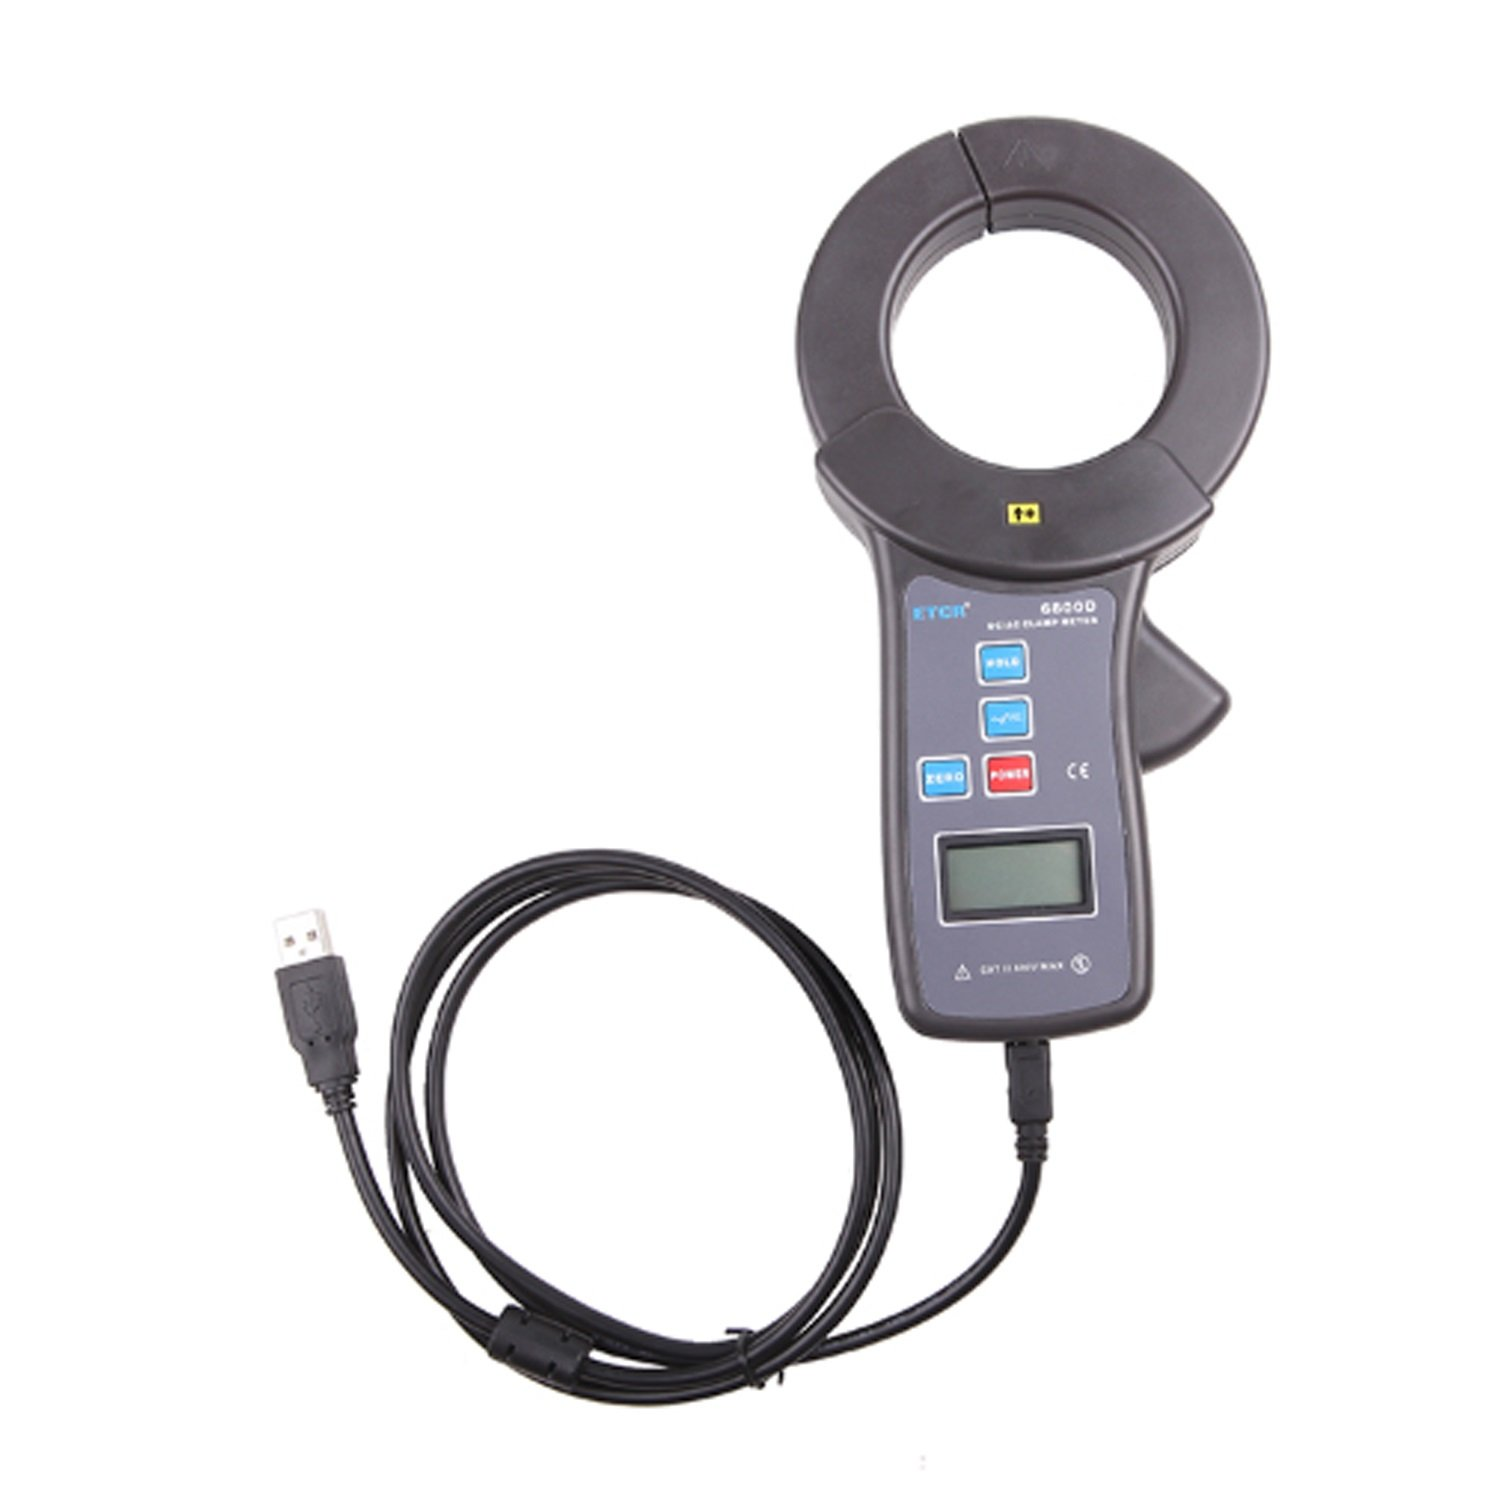 Lanlanmaoyimg Ammeter USB Interface Digital clamp Ammeter with ETCR6800D 0~2000A AC DC Leakage Current Clamp Meter ETCR6800D Precision Measurement